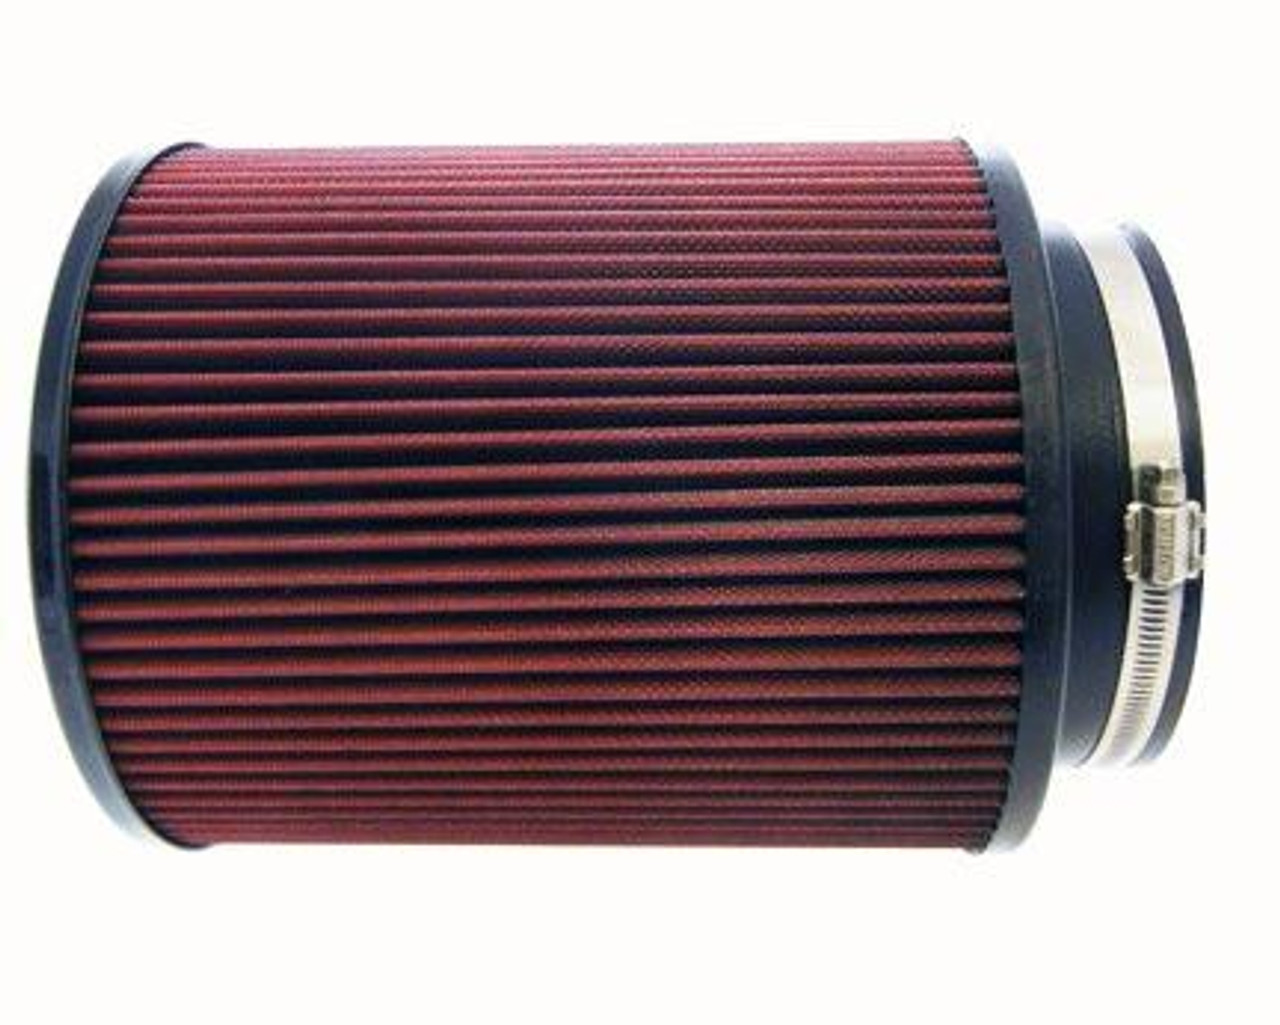 MAN Replacement Walker Style Filter 1000917